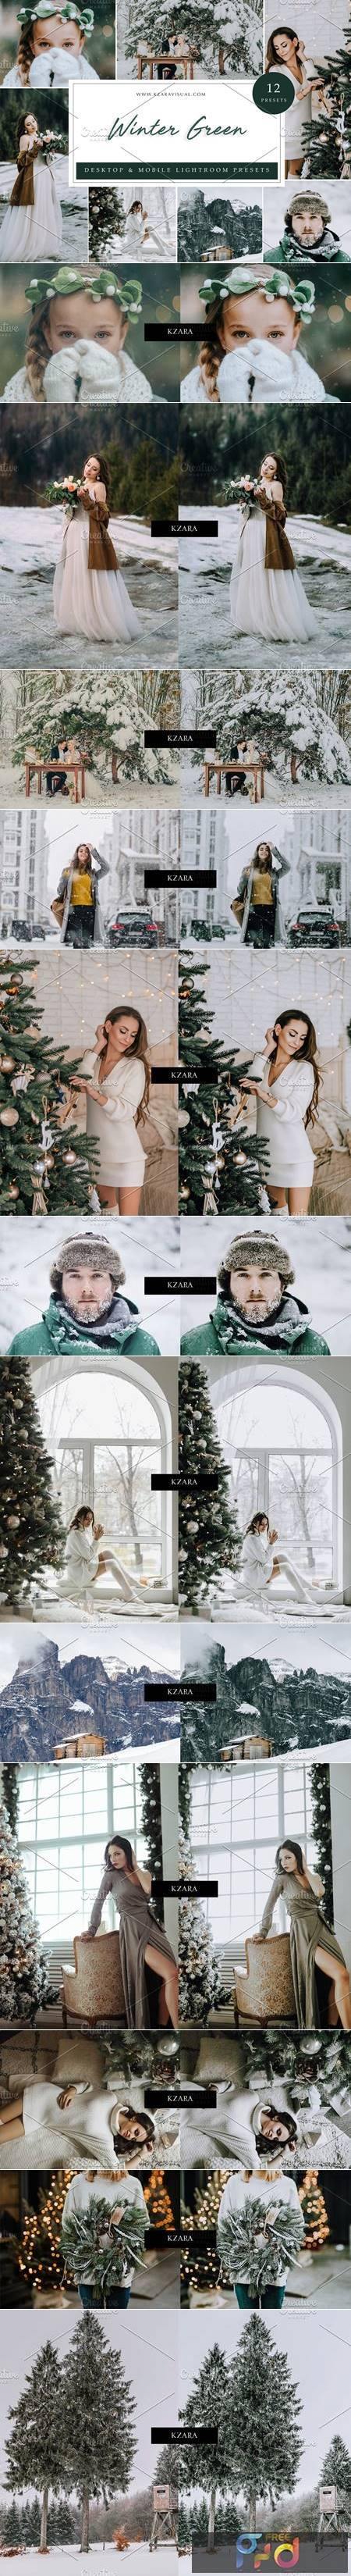 12 x Lightroom Presets, Winter Green 5962772 1